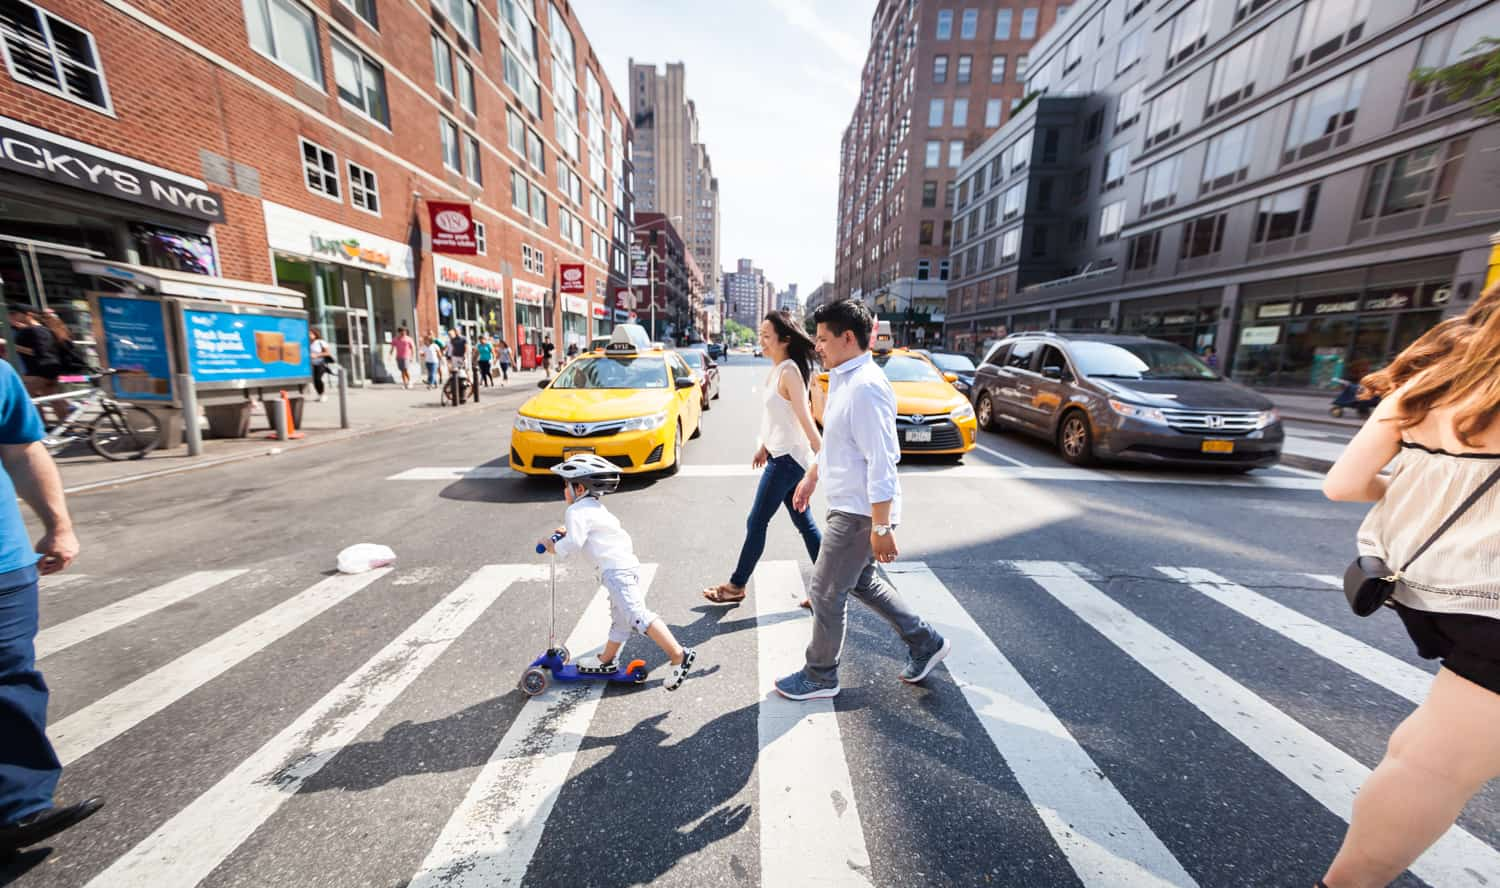 Chelsea family portrait of parents and little boy in Manhattan crosswalk